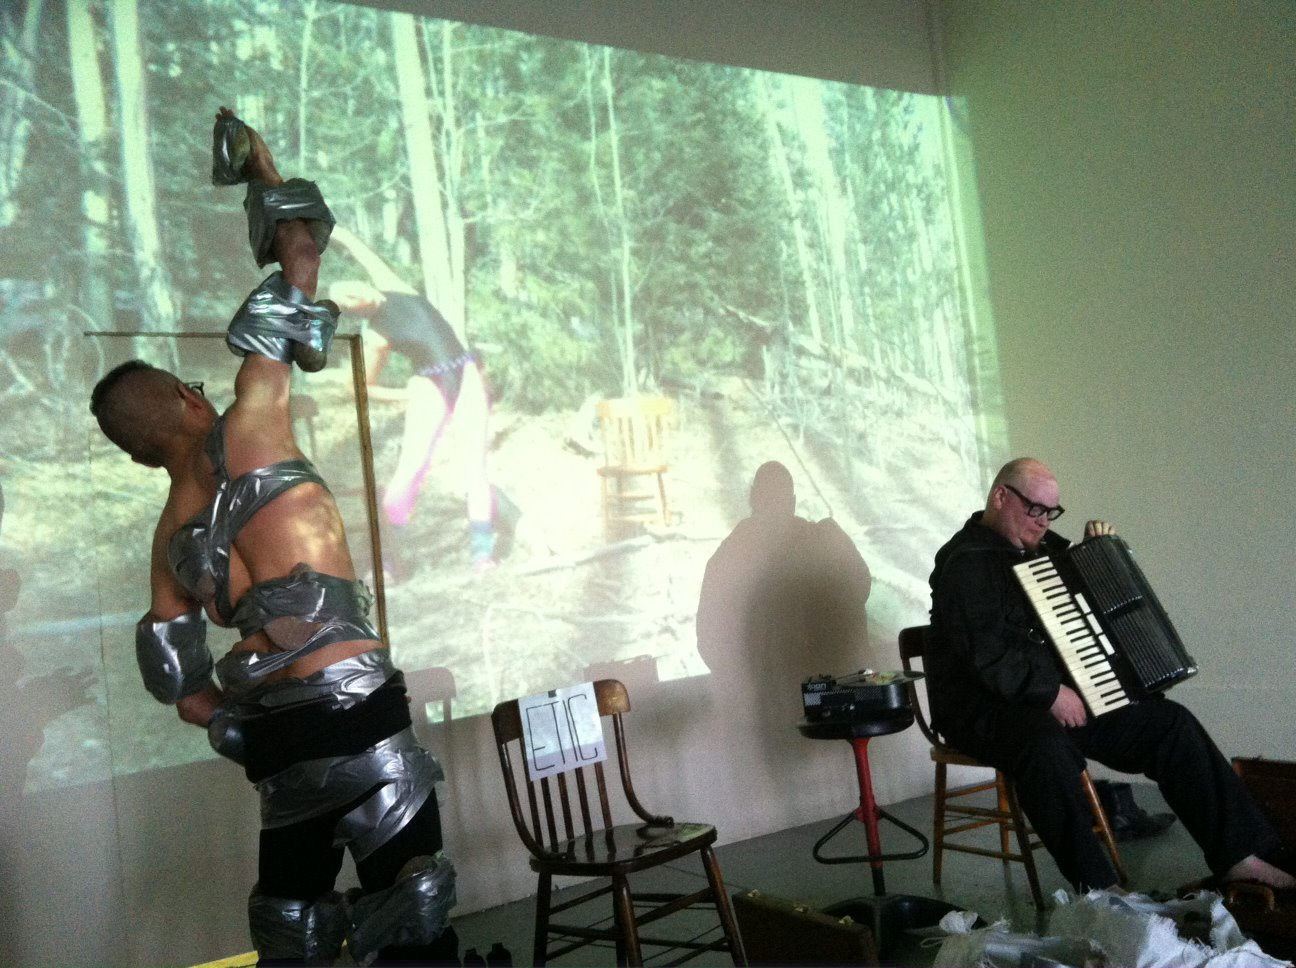 """The Product Division (conceptual artists Red Cell and JC Gonzo) performed their piece titled """"Idiot Future: Teaching Stones to Sing"""" at Spirit Abuse on Sunday, April 7. Photo courtesy of Spirit Abuse"""